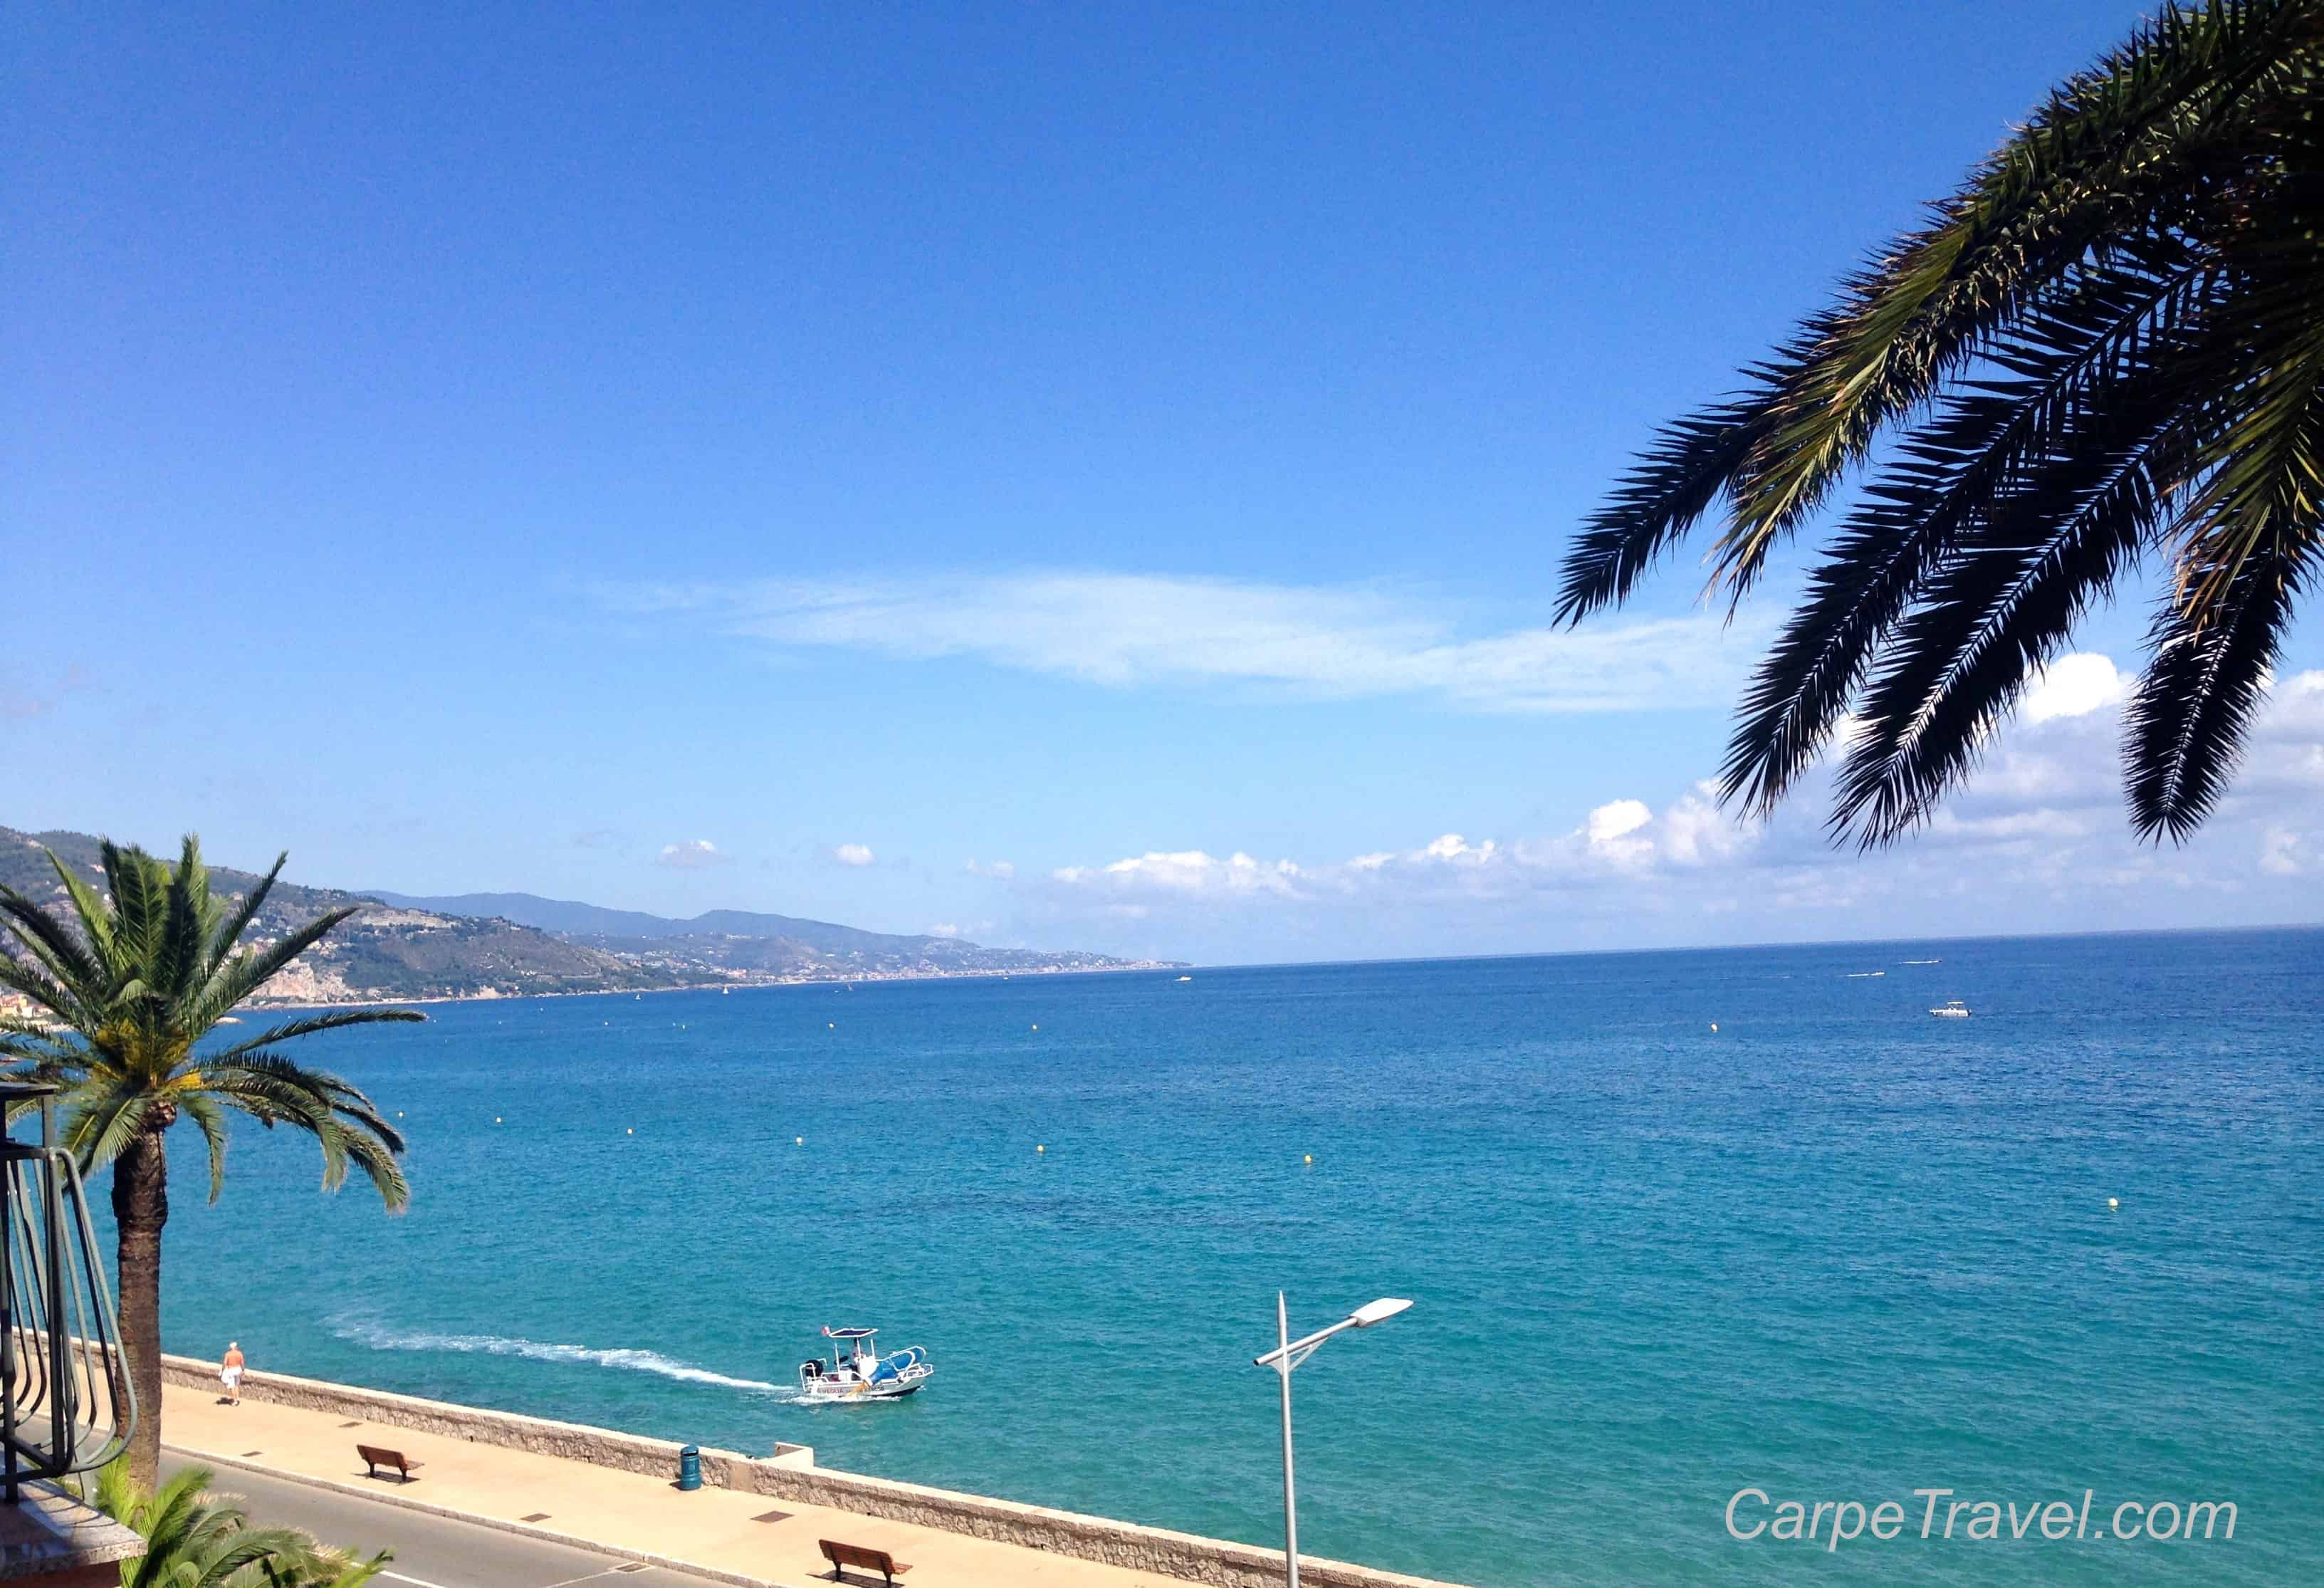 My American Express >> Check-in: Hotel Prince De Galles in Menton, France